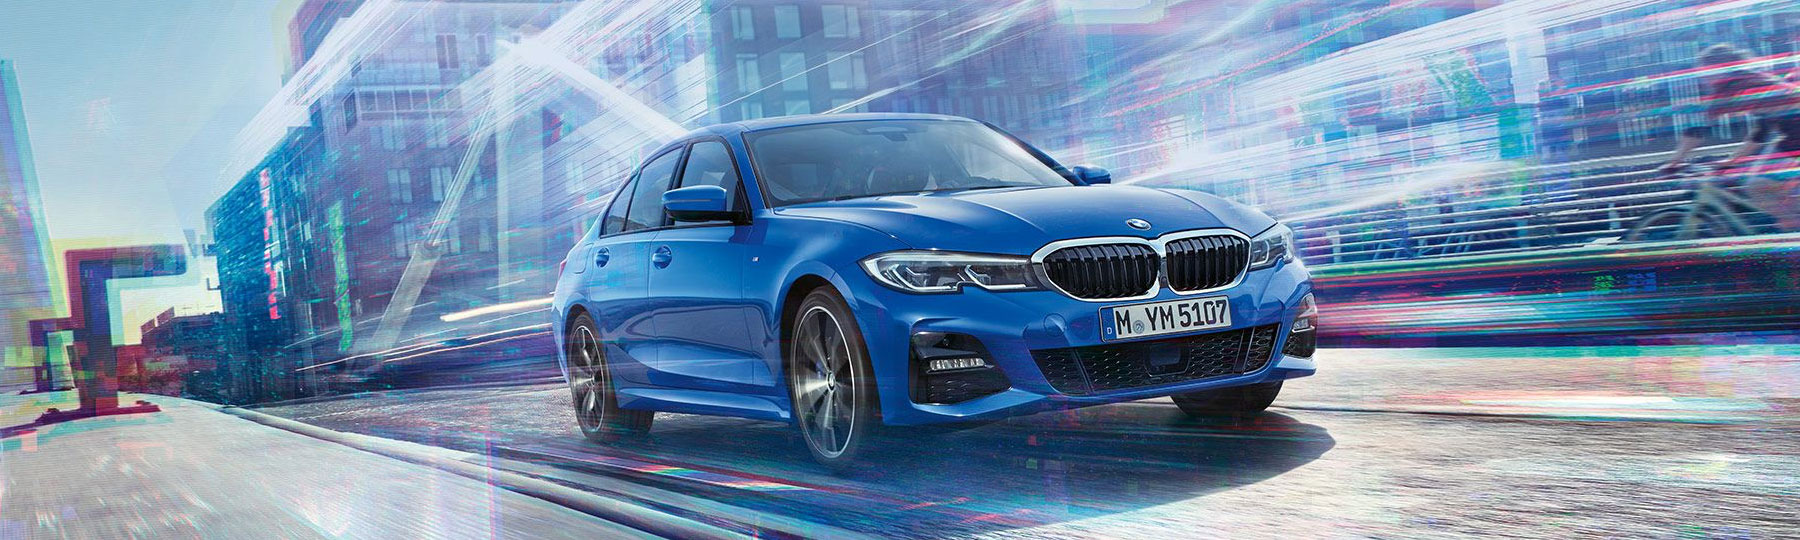 New BMW 3 Series Saloon Business Offer